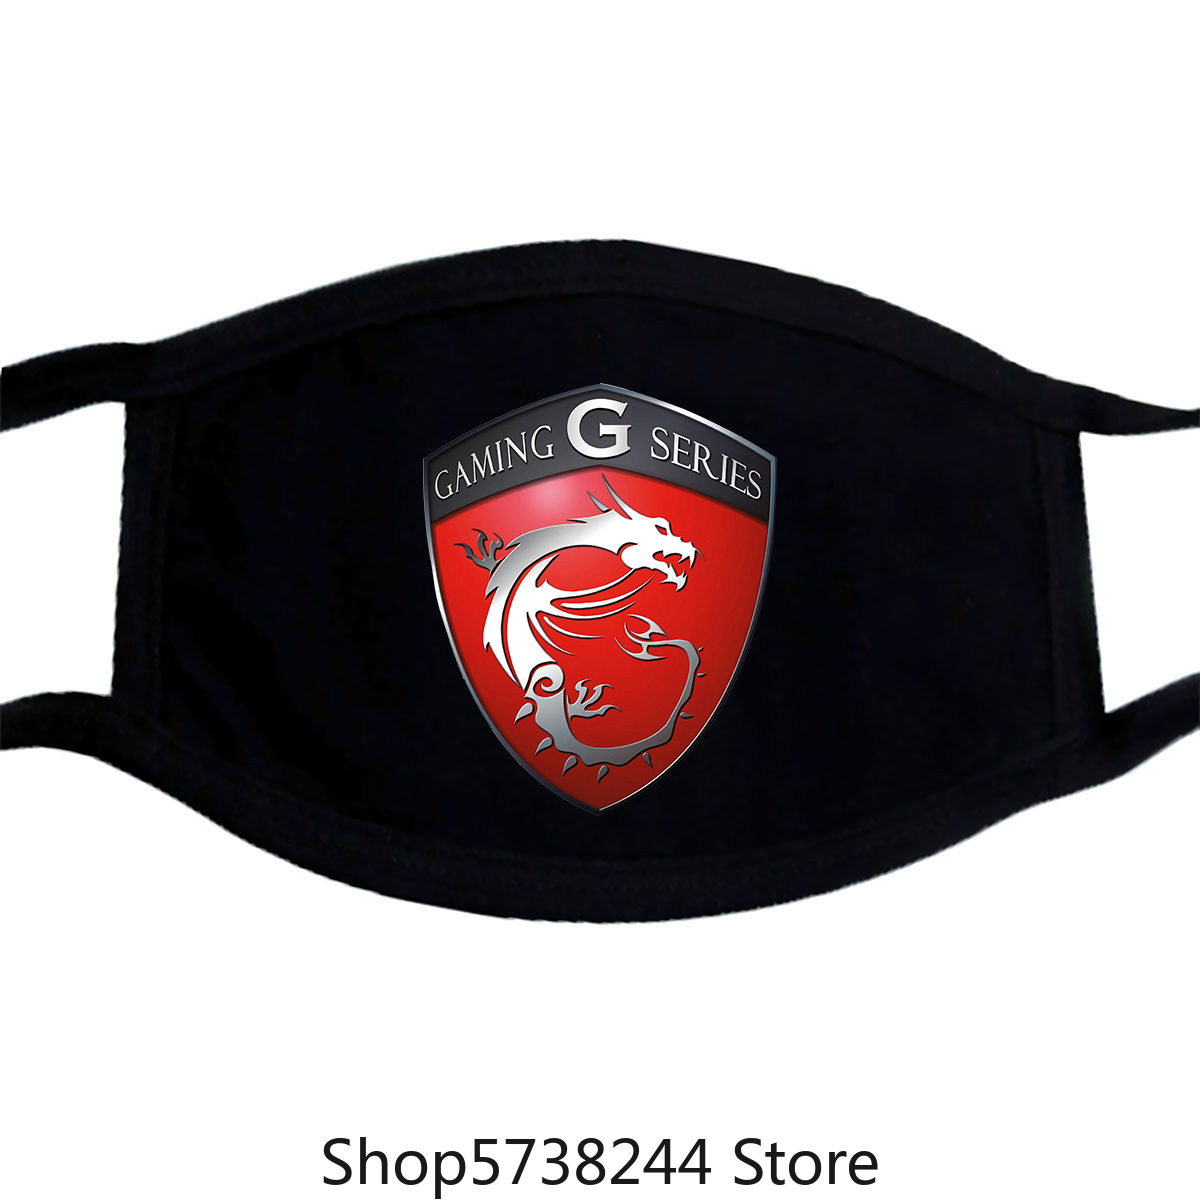 New Gaming Series Msi Shield Logo Men'S Black Mask Size Xs To 3Xl Washable Reusable Mask With